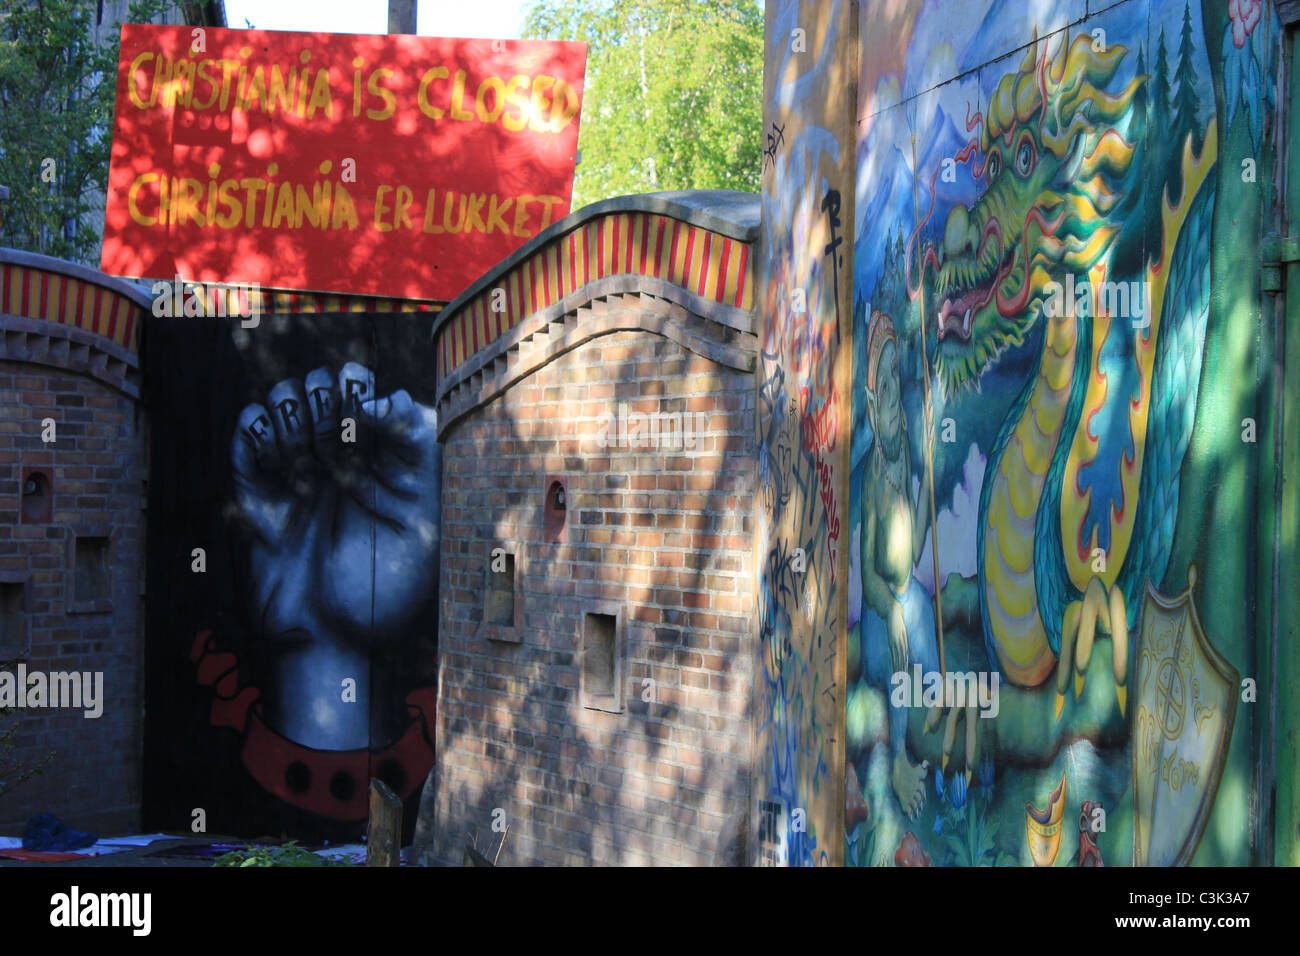 Free town Christiania closed it´s doors for public at the end of April 2011 to decide about their future. - Stock Image